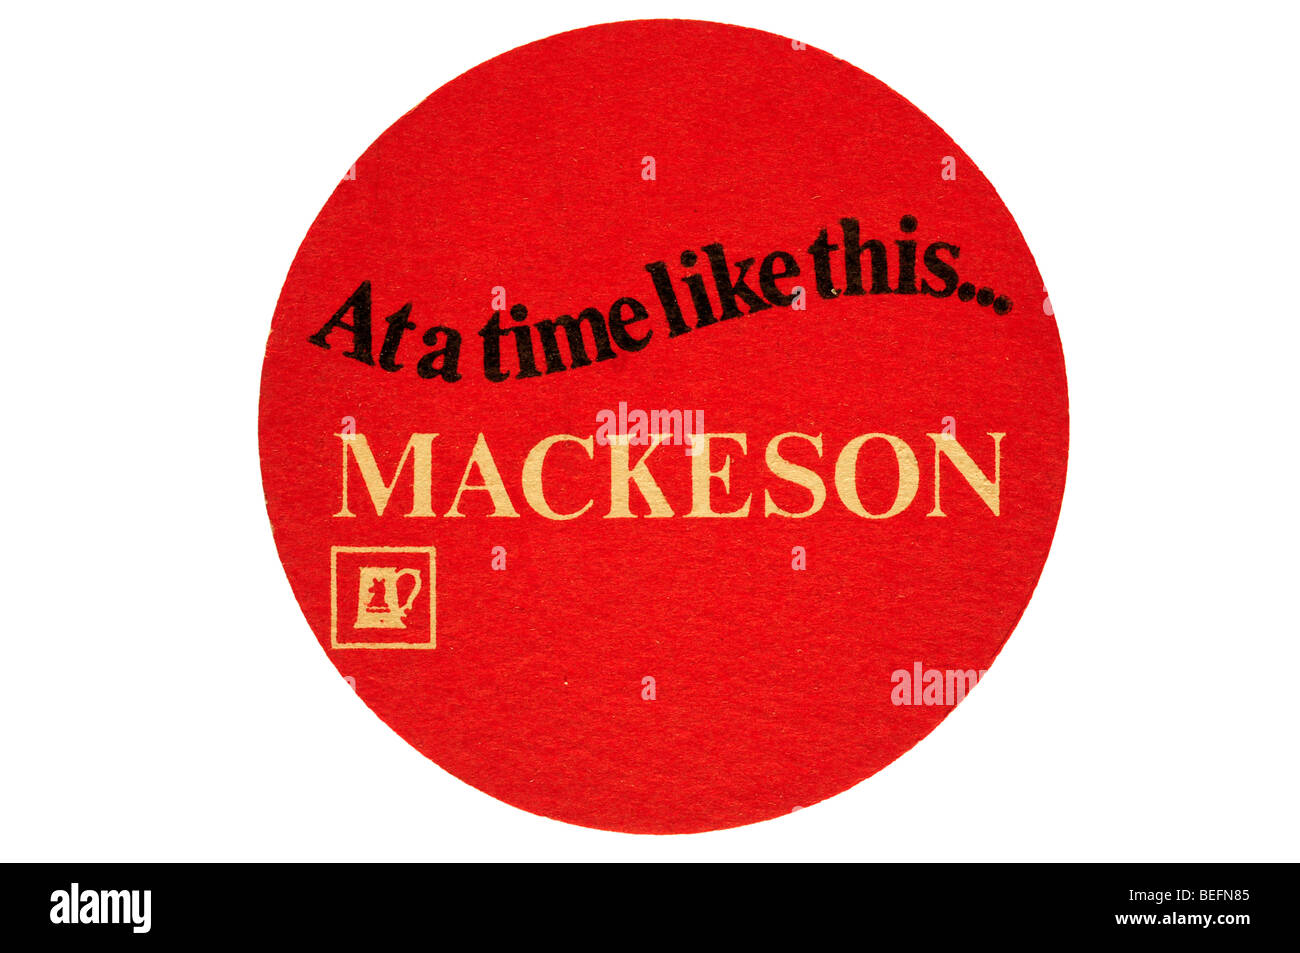 at a time like this mackeson beer mat - Stock Image